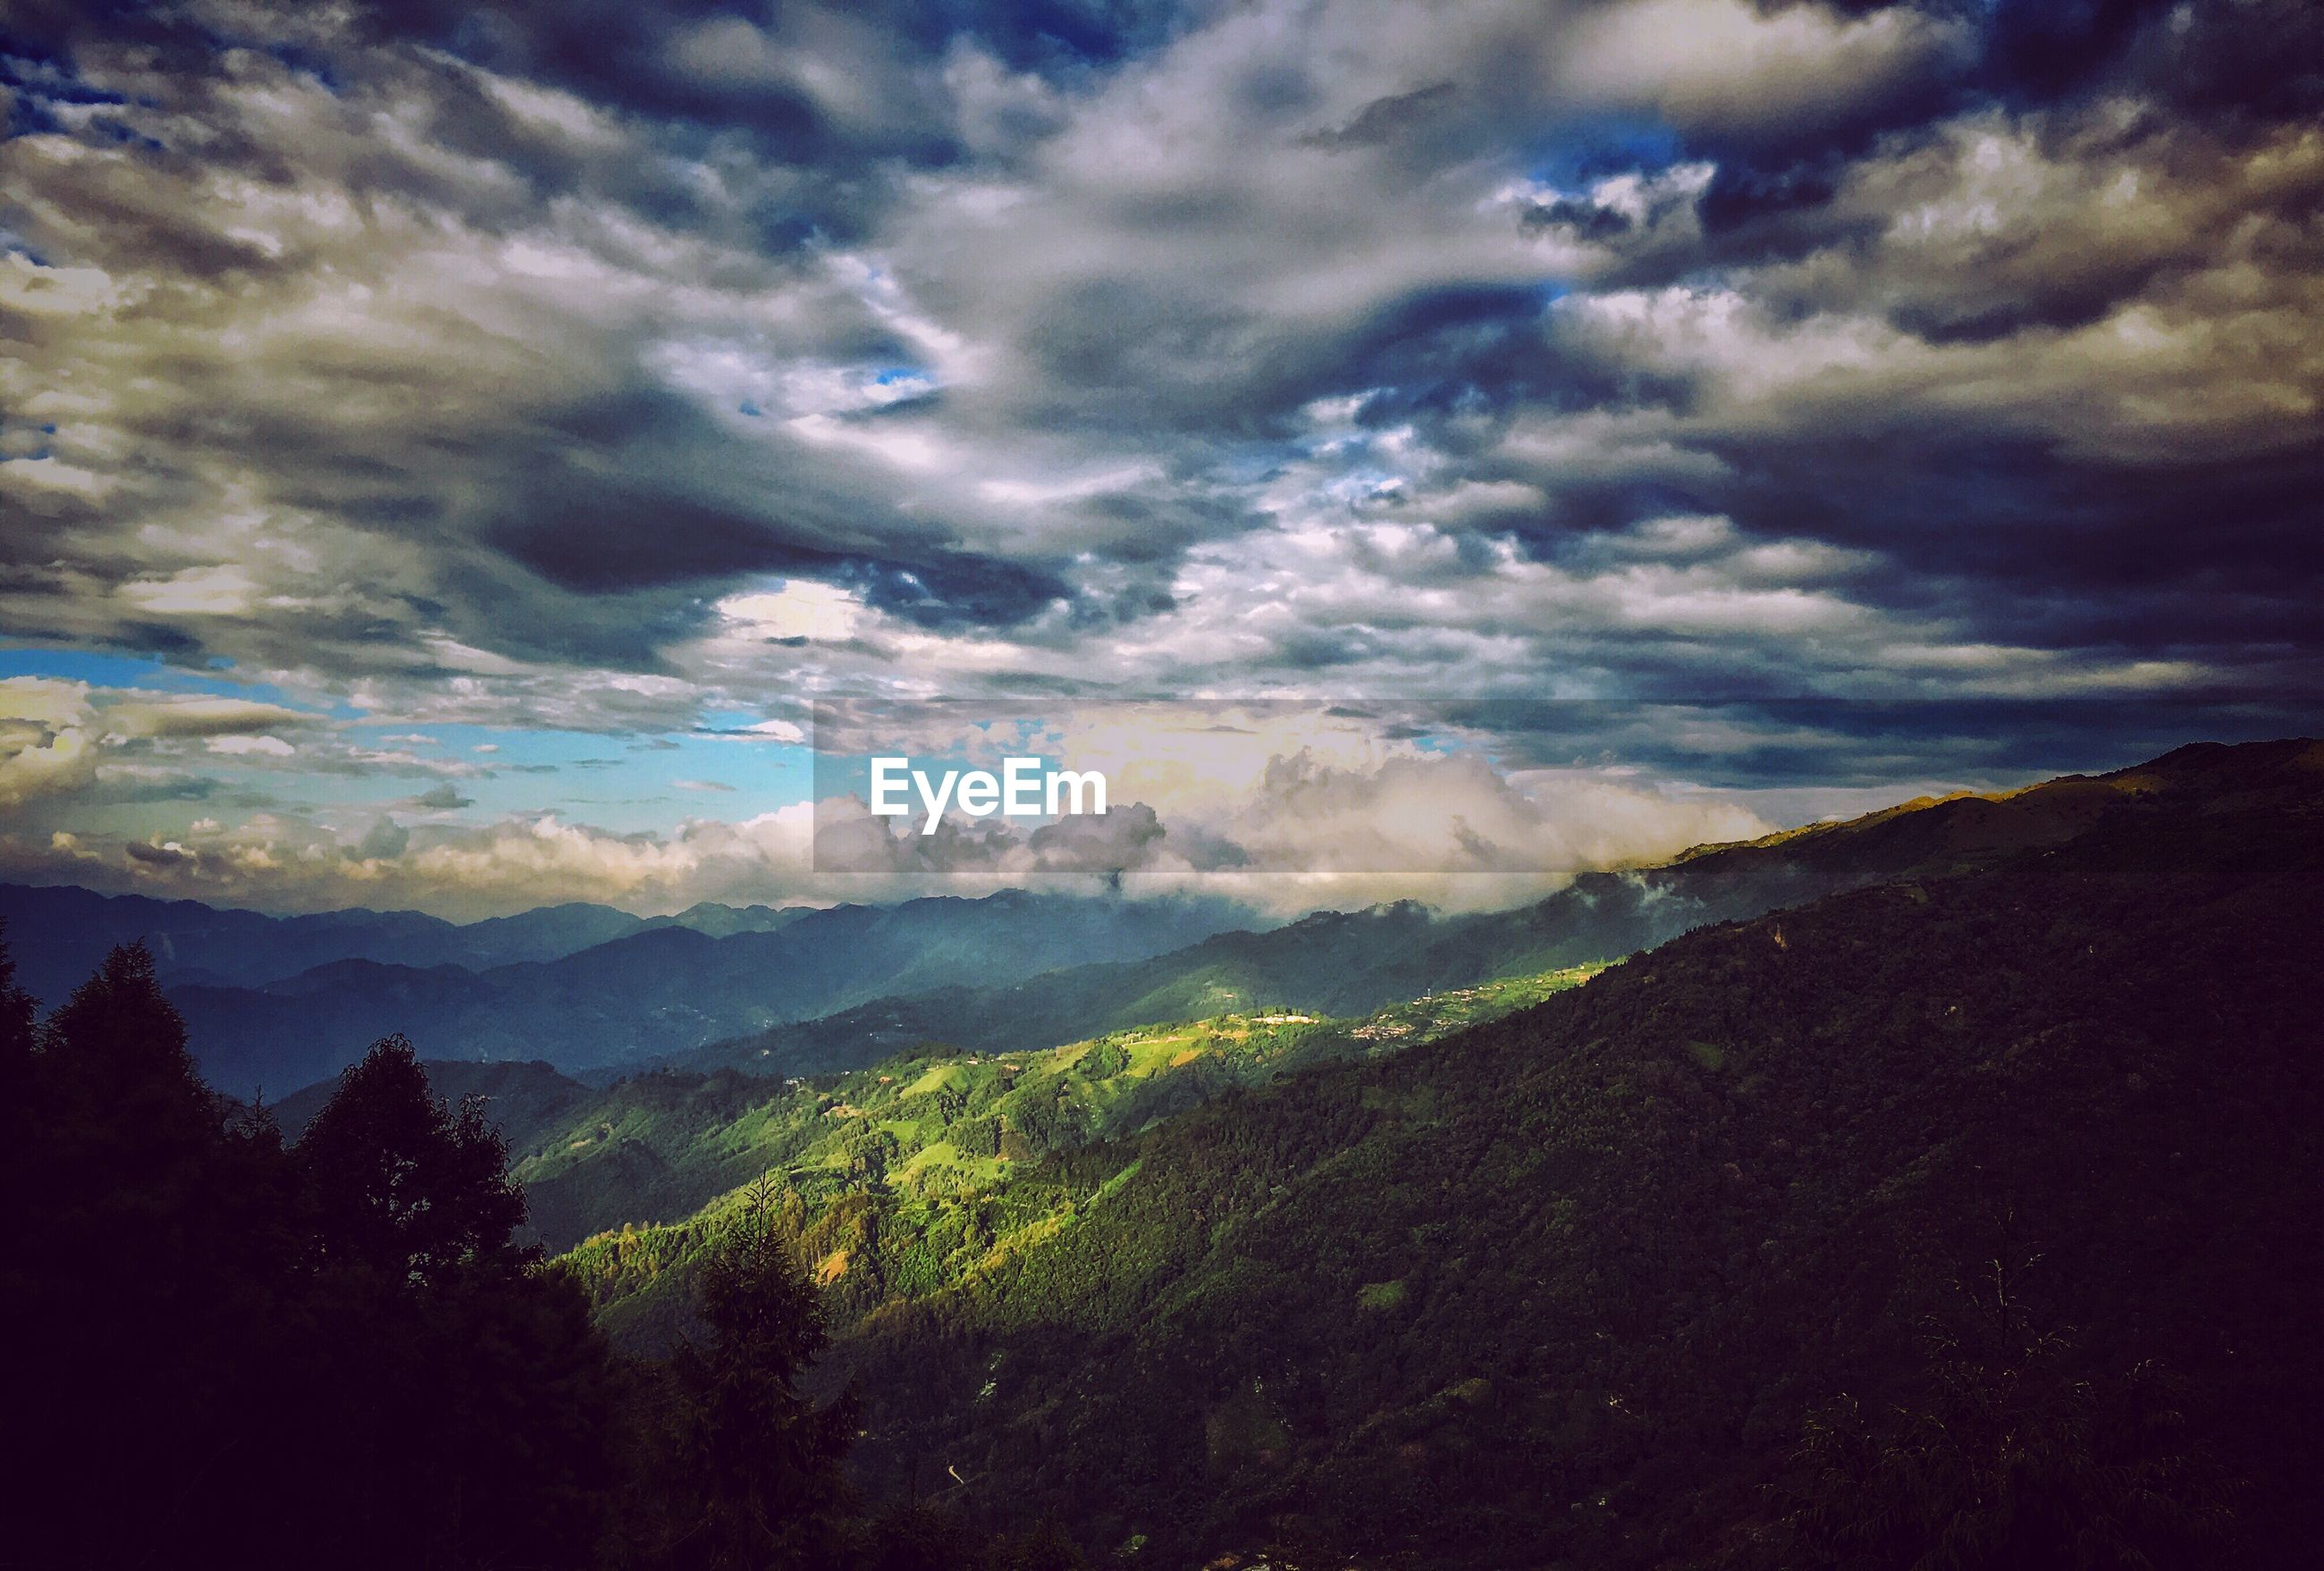 SCENIC VIEW OF MOUNTAIN LANDSCAPE AGAINST CLOUDY SKY